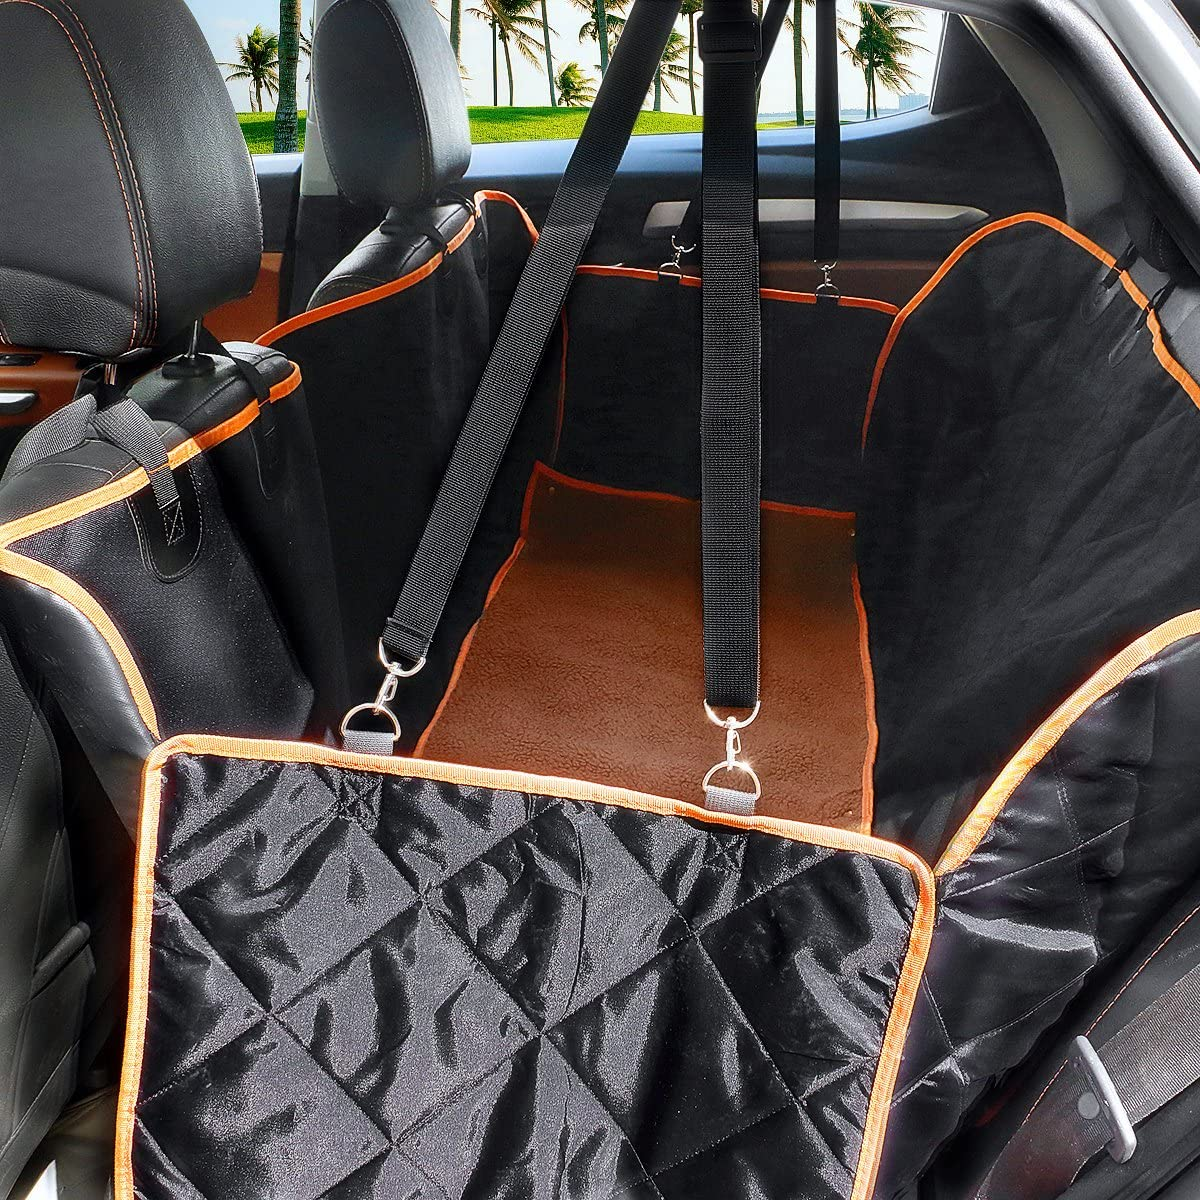 Large Dog Seat Cover With Side Flaps Non Slip Trucks and SUV Hammock Waterproof Pet Back Car Seat Cover With Seat Anchors for Cars Machine Washable Fragralley